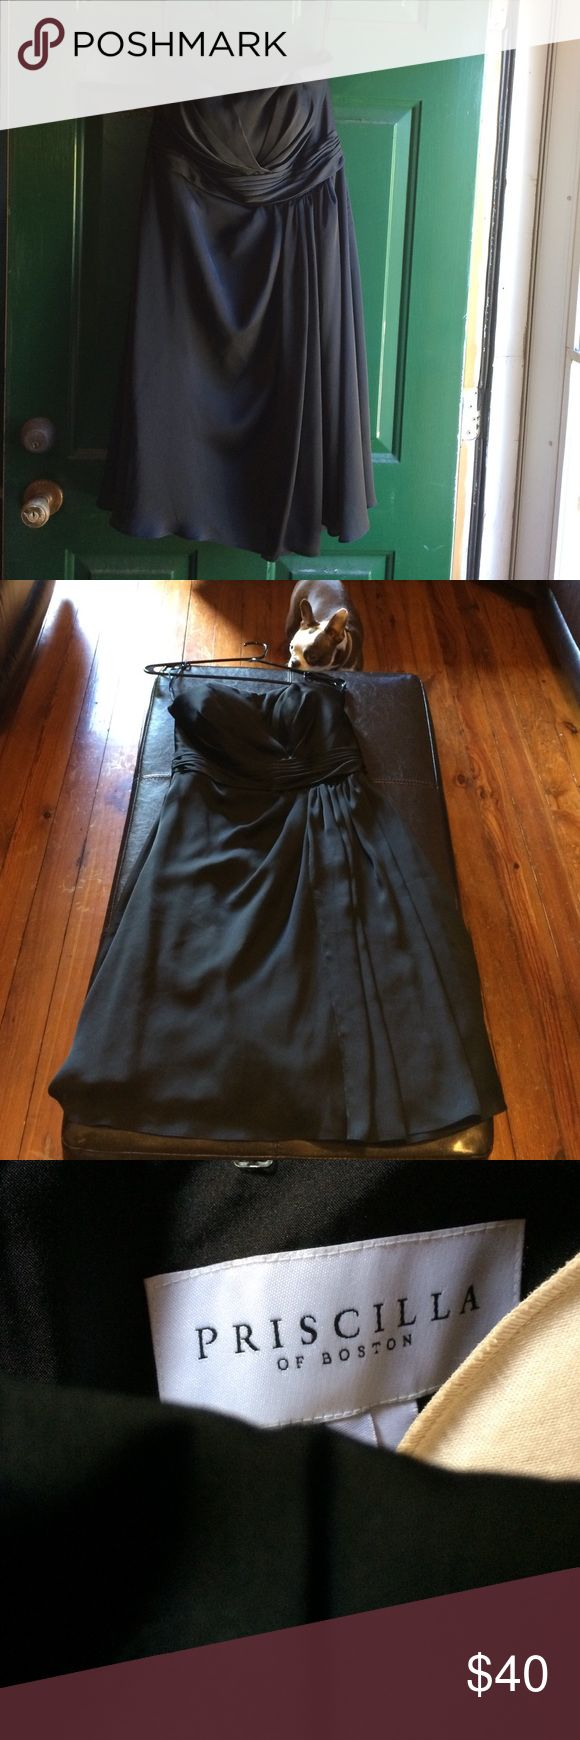 Vintage Priscilla of Boston dress size 10 Elegant, black strapless dress from Priscilla of Boston, known for being an amazing wedding dress designer in New York for 65 years before closing. Smoke free home. Dog mom. Very flattering dress!!!!! If this doesn't sell I'm keeping it for my 2018 cruise!!!! It's stunning!!! priscilla of boston Dresses Strapless